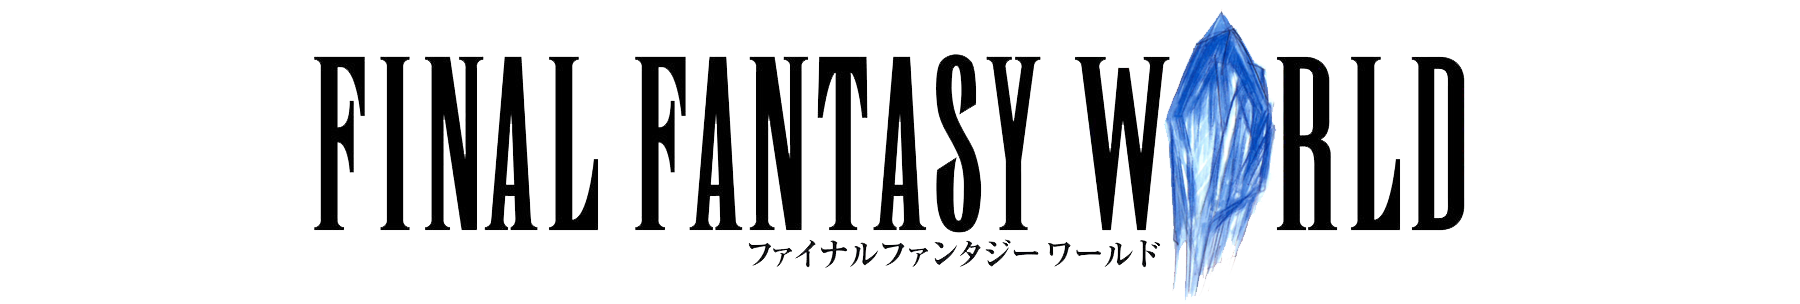 Final Fantasy World